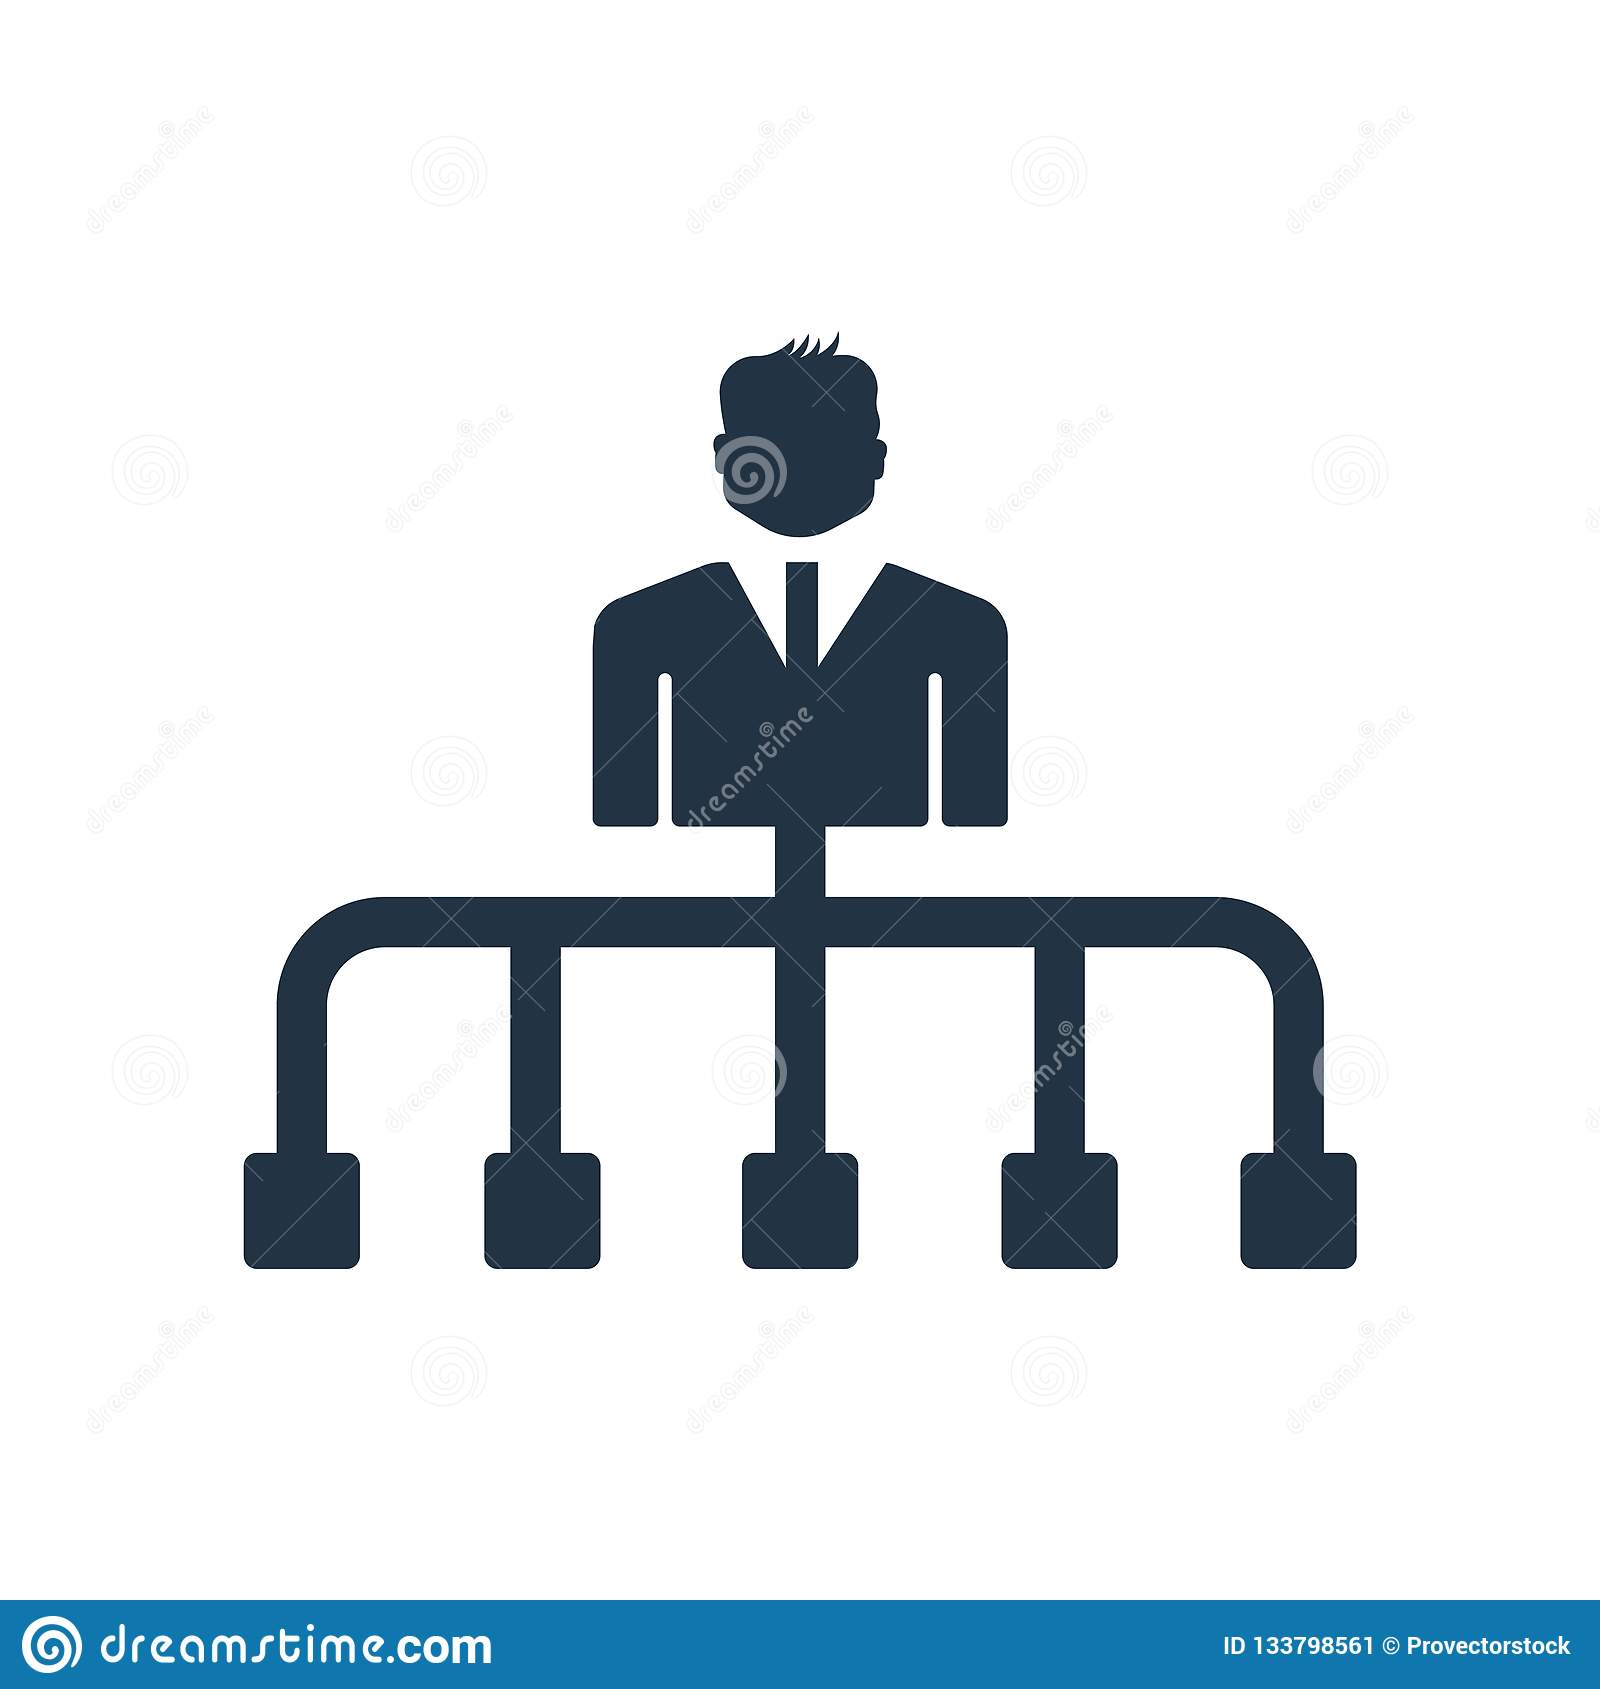 Hierarchical structure icon vector isolated on white background